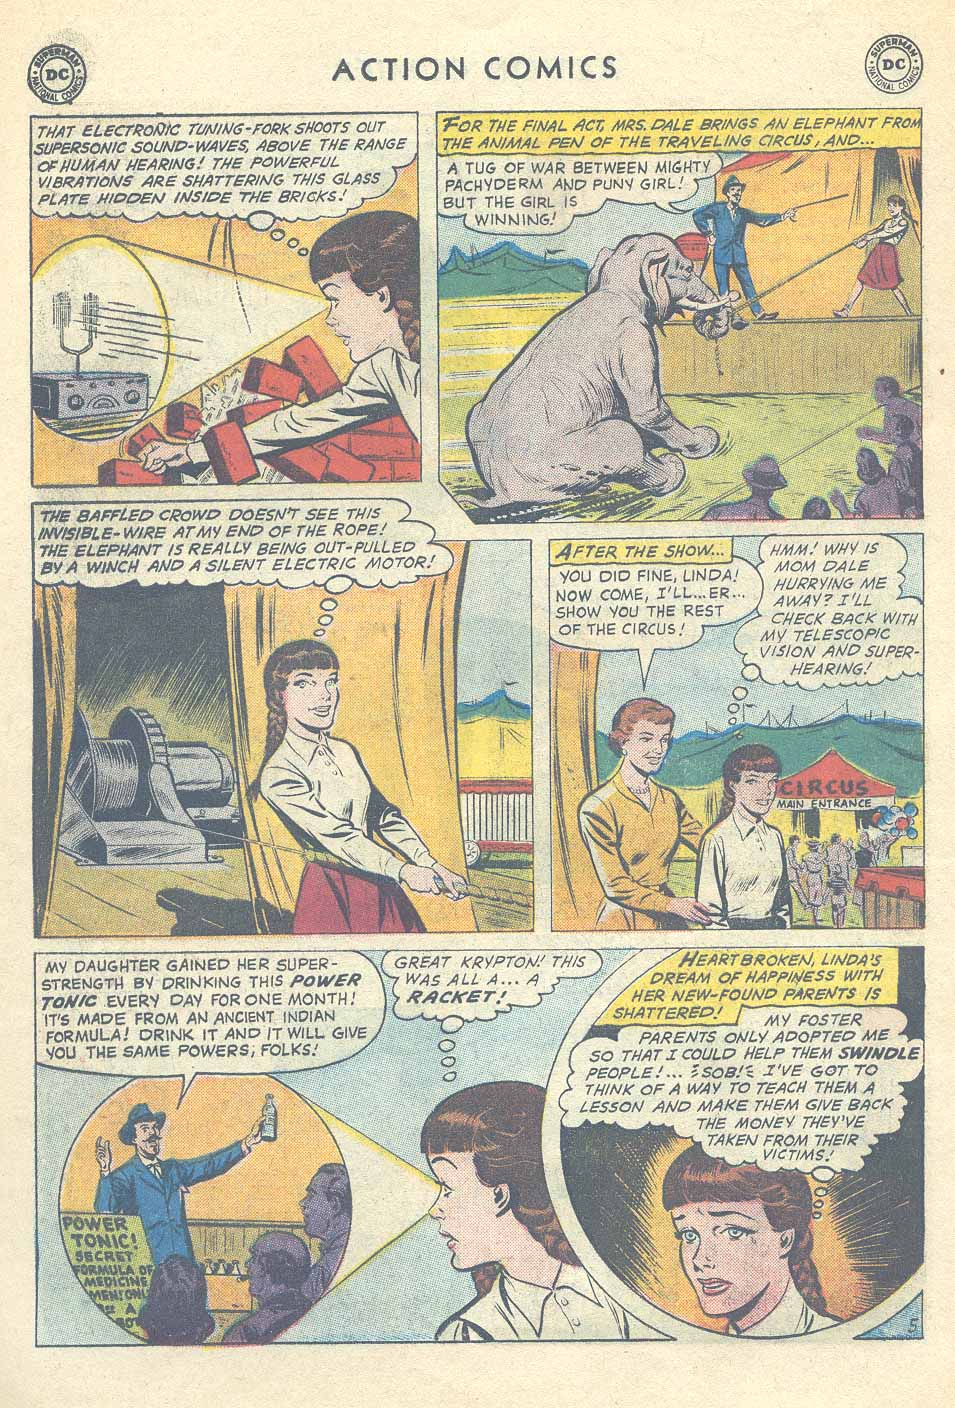 Action Comics (1938) 254 Page 29